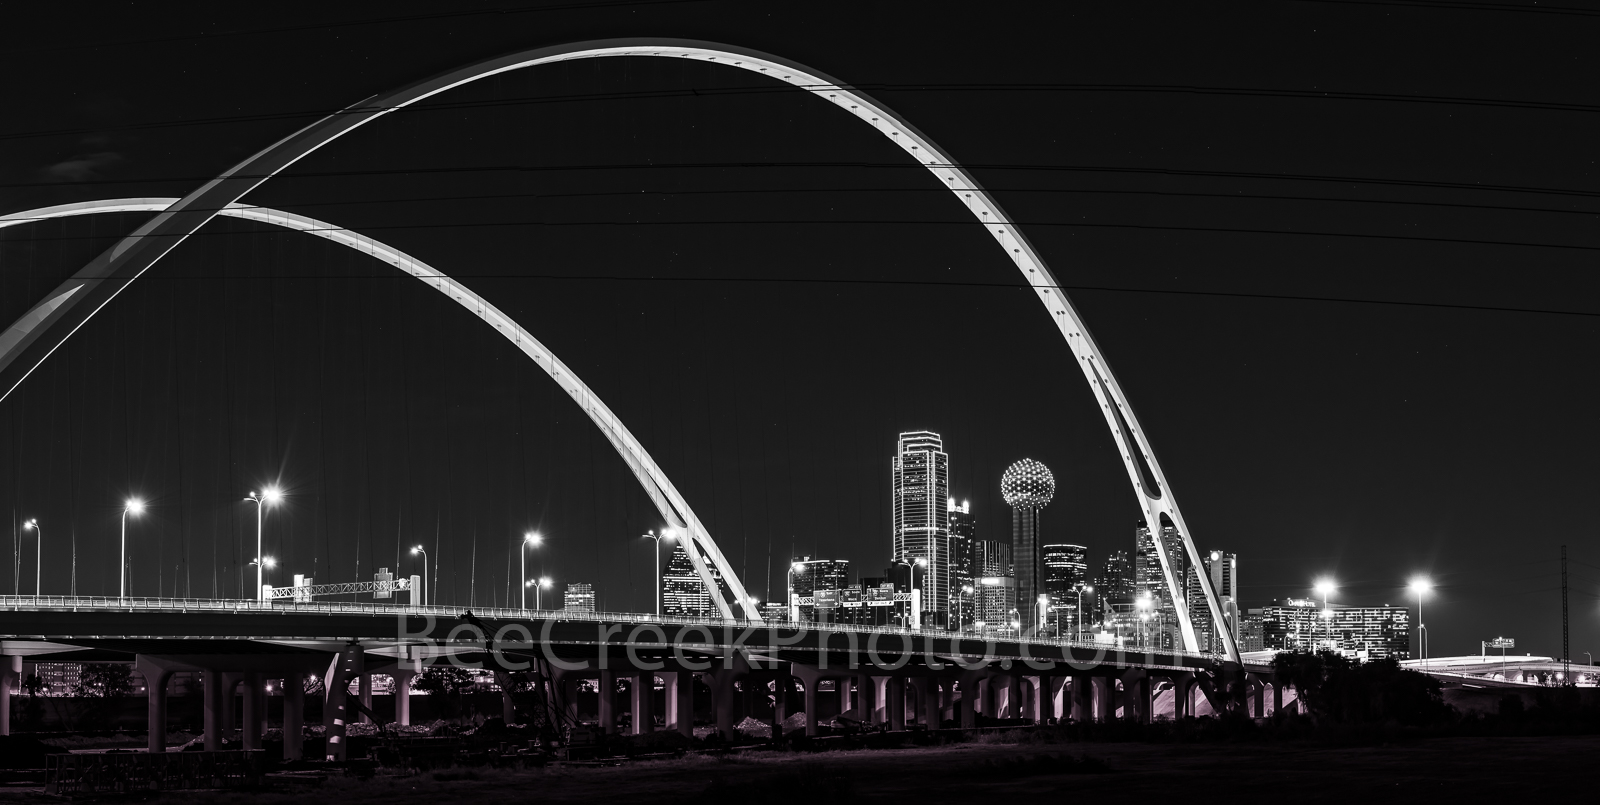 Dallas skyline, black and white, BW, cityscape, Margaret McDermott Bridge, downtown, dark, steel bridge, suspended, two arches, Trinity River, I30, Trinity project, Santiago Calatrava, pedestrian, bik, photo